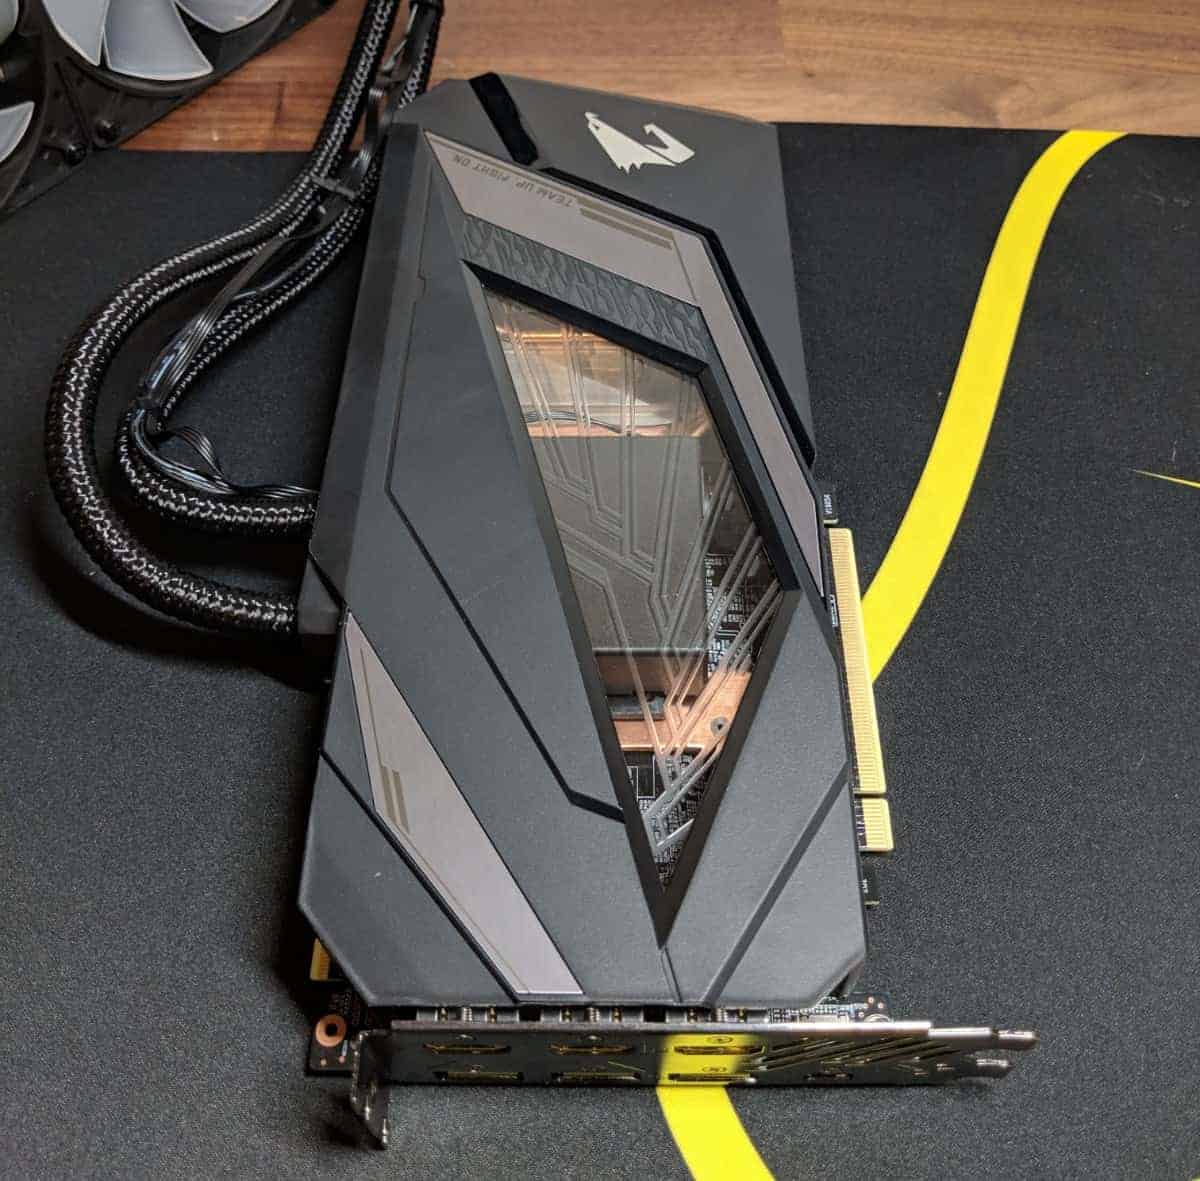 Gigabyte-2080-Xtreme-Waterforce-Photos-05 Gigabyte AORUS RTX 2080 Xtreme Waterforce Review